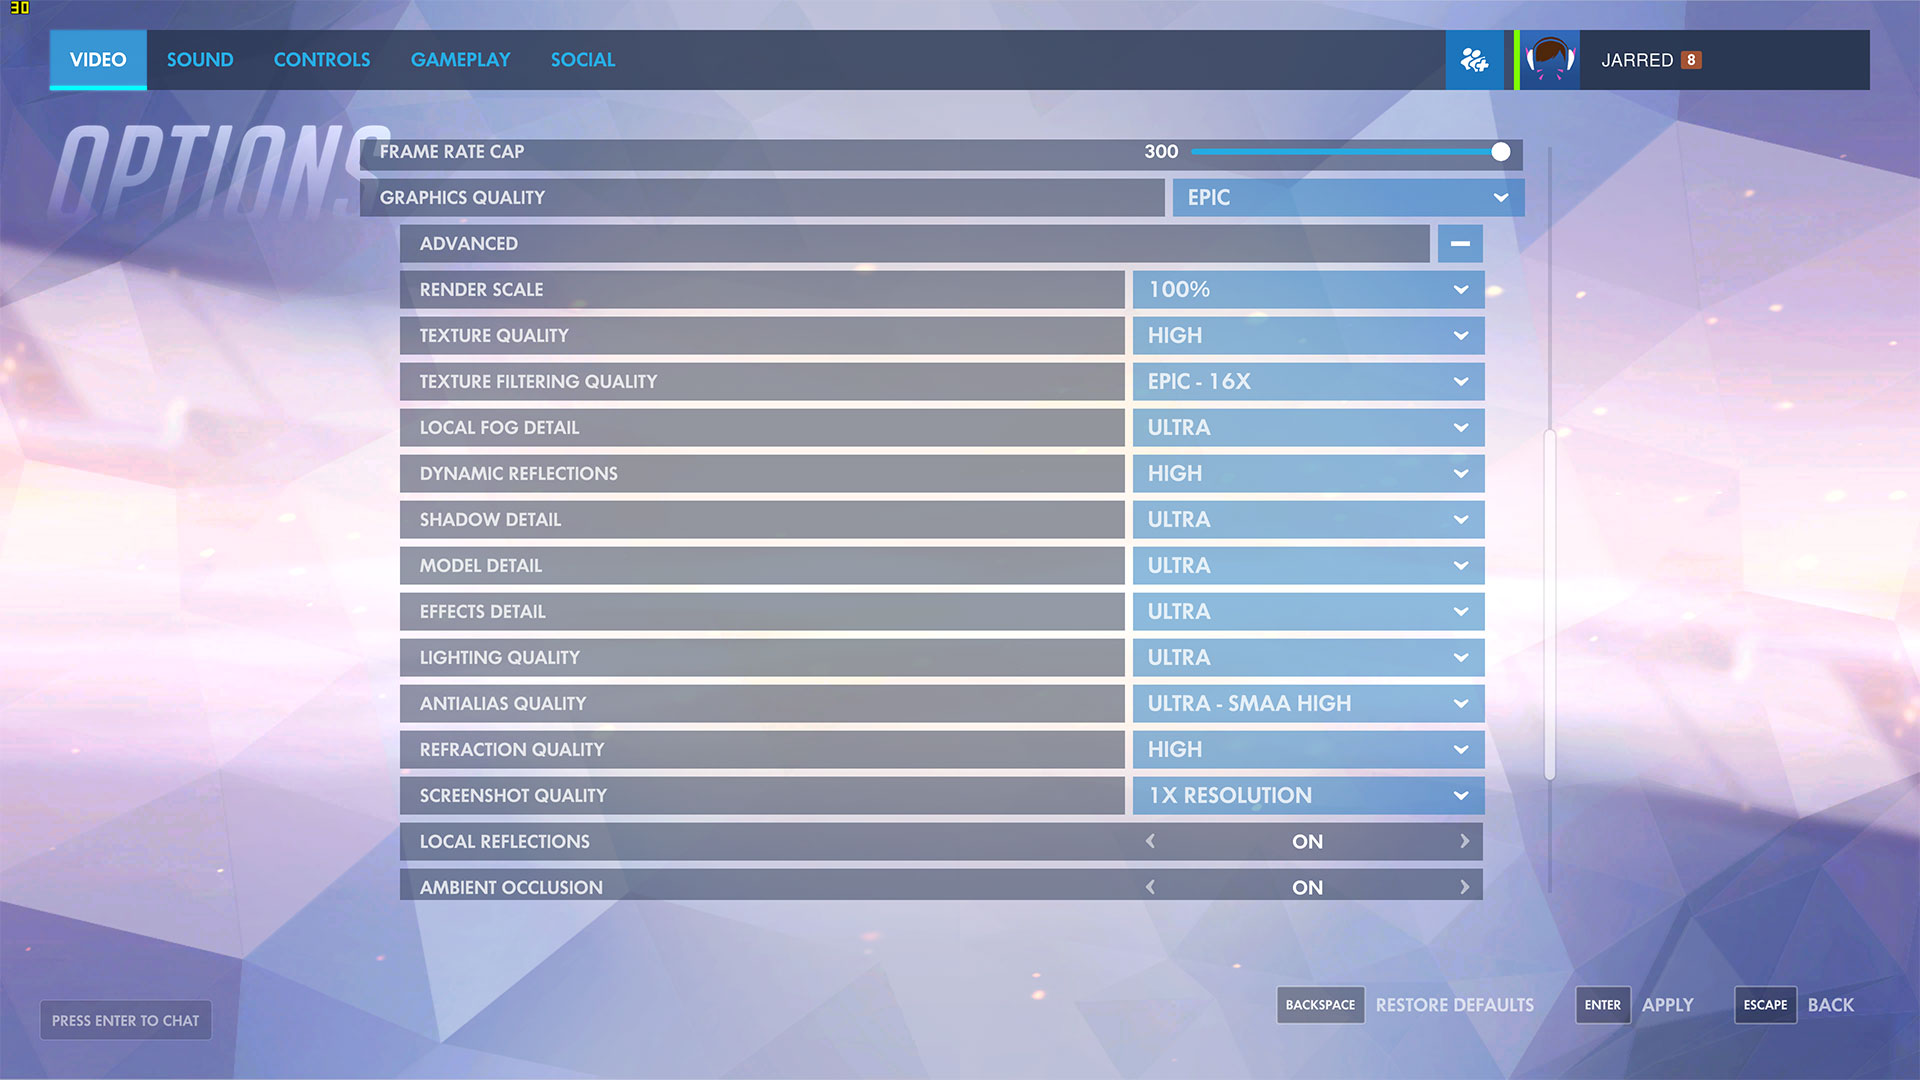 Overwatch settings guide: recommended tweaks and GPUs for